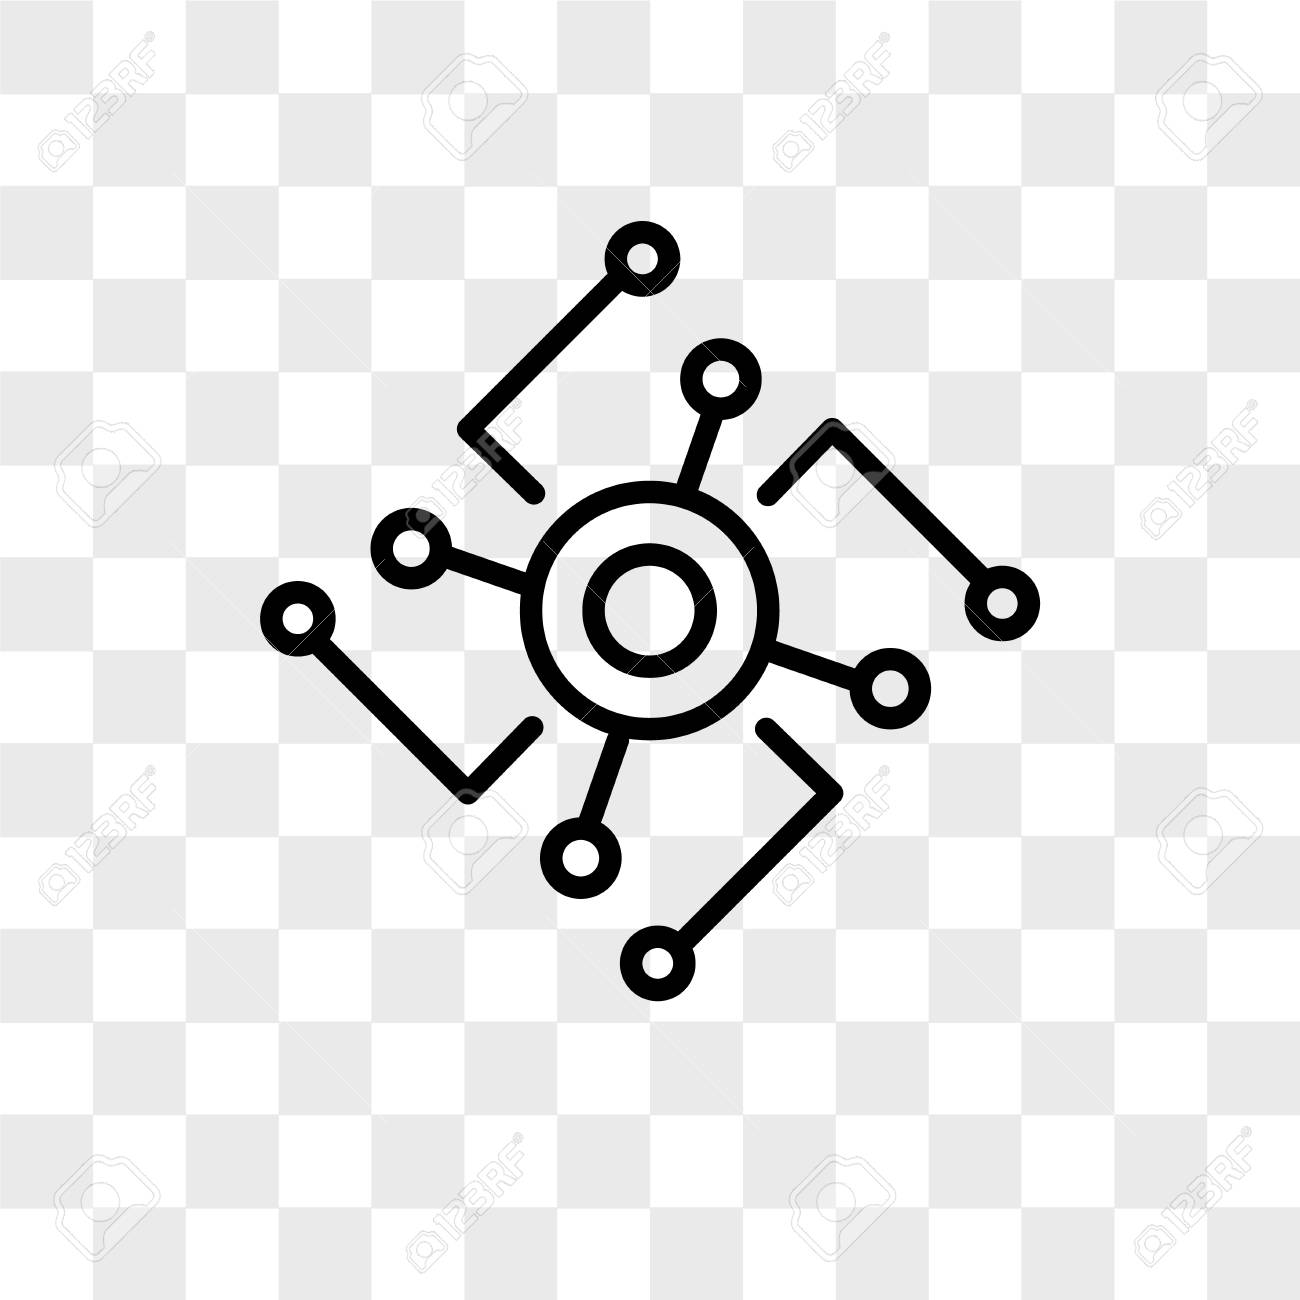 cpu vector icon isolated on transparent background cpu logo royalty free cliparts vectors and stock illustration image 108439728 cpu vector icon isolated on transparent background cpu logo